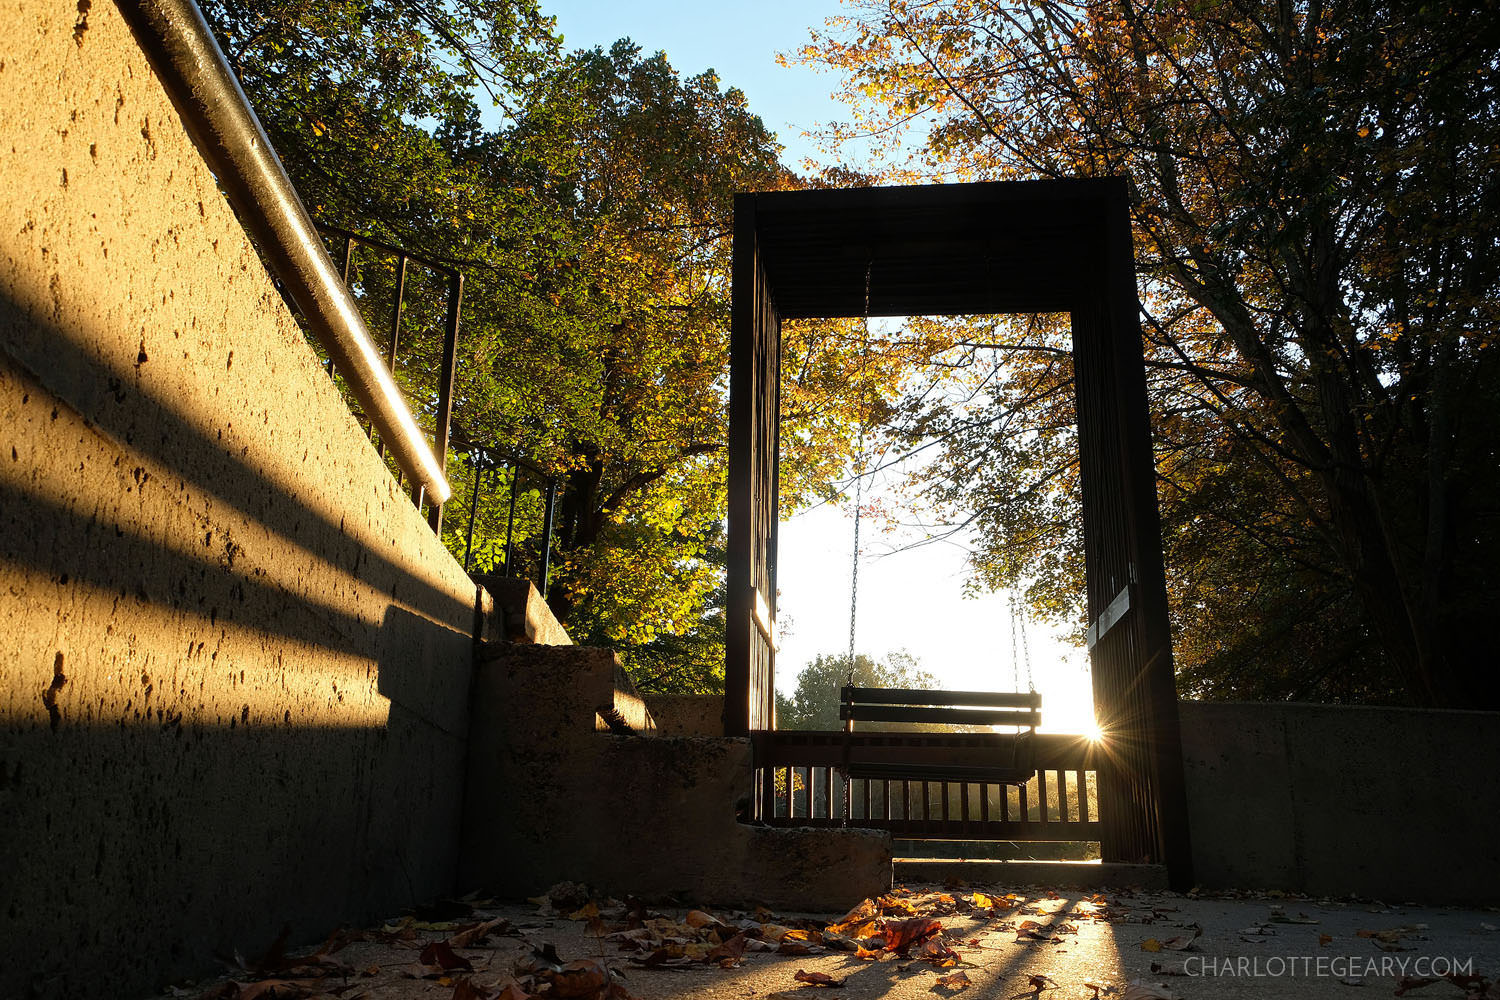 The Lake Anne canal swing in Reston